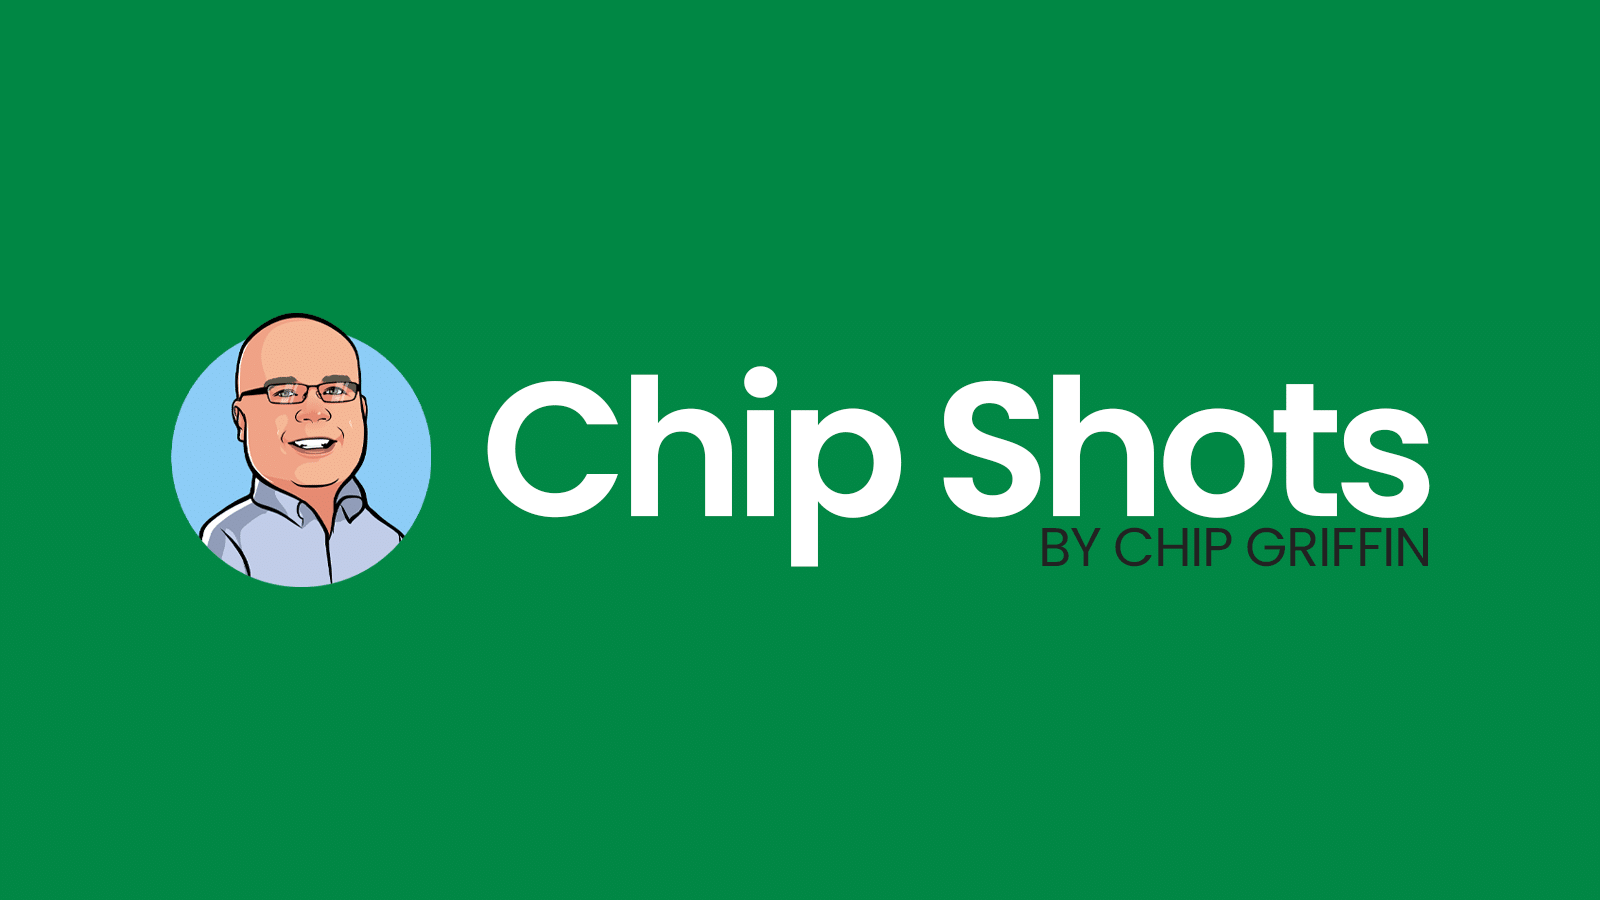 Chip Shots by Chip Griffin